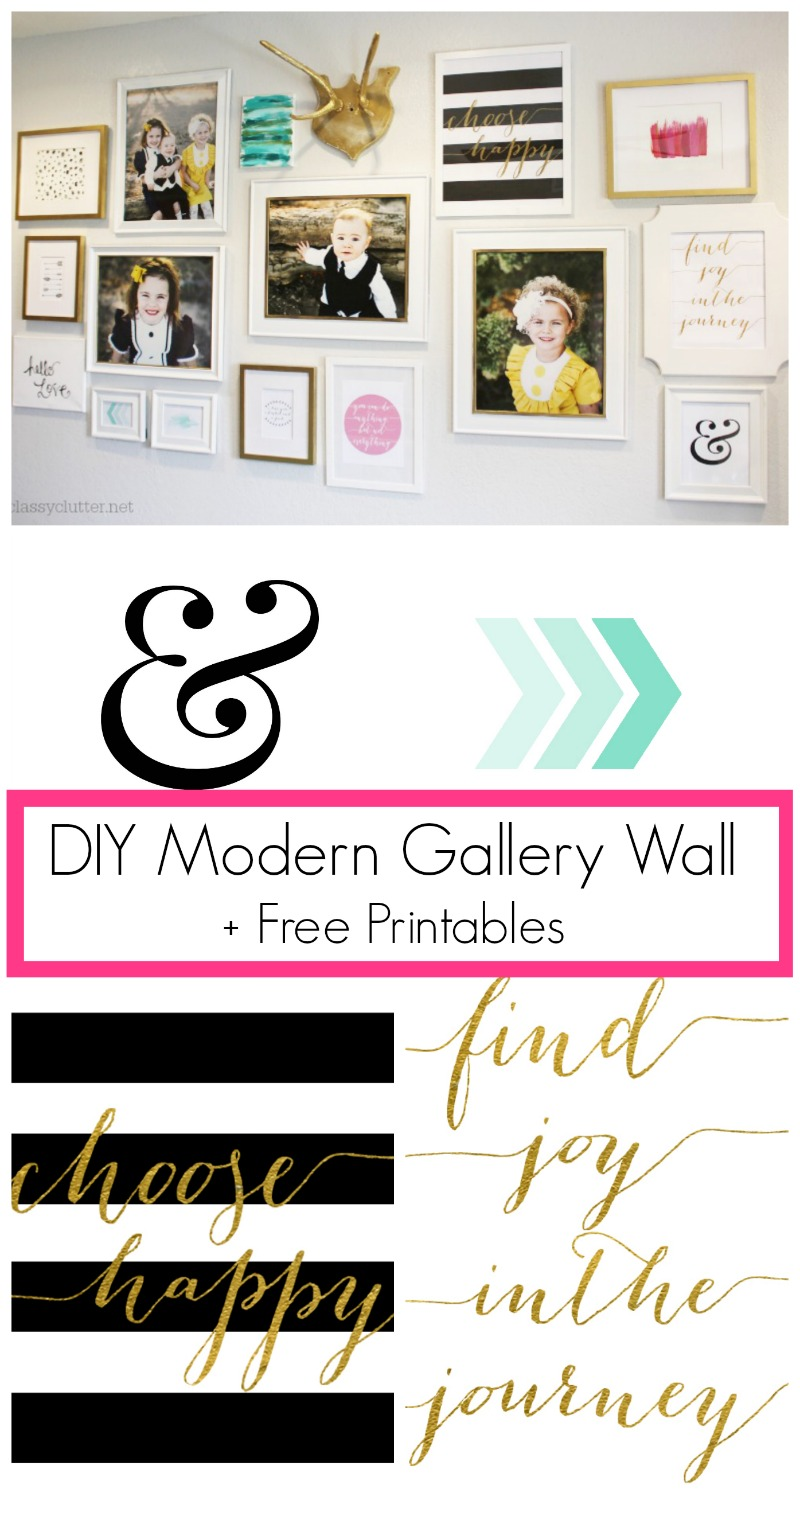 This is a picture of Unforgettable Gallery Wall Printables